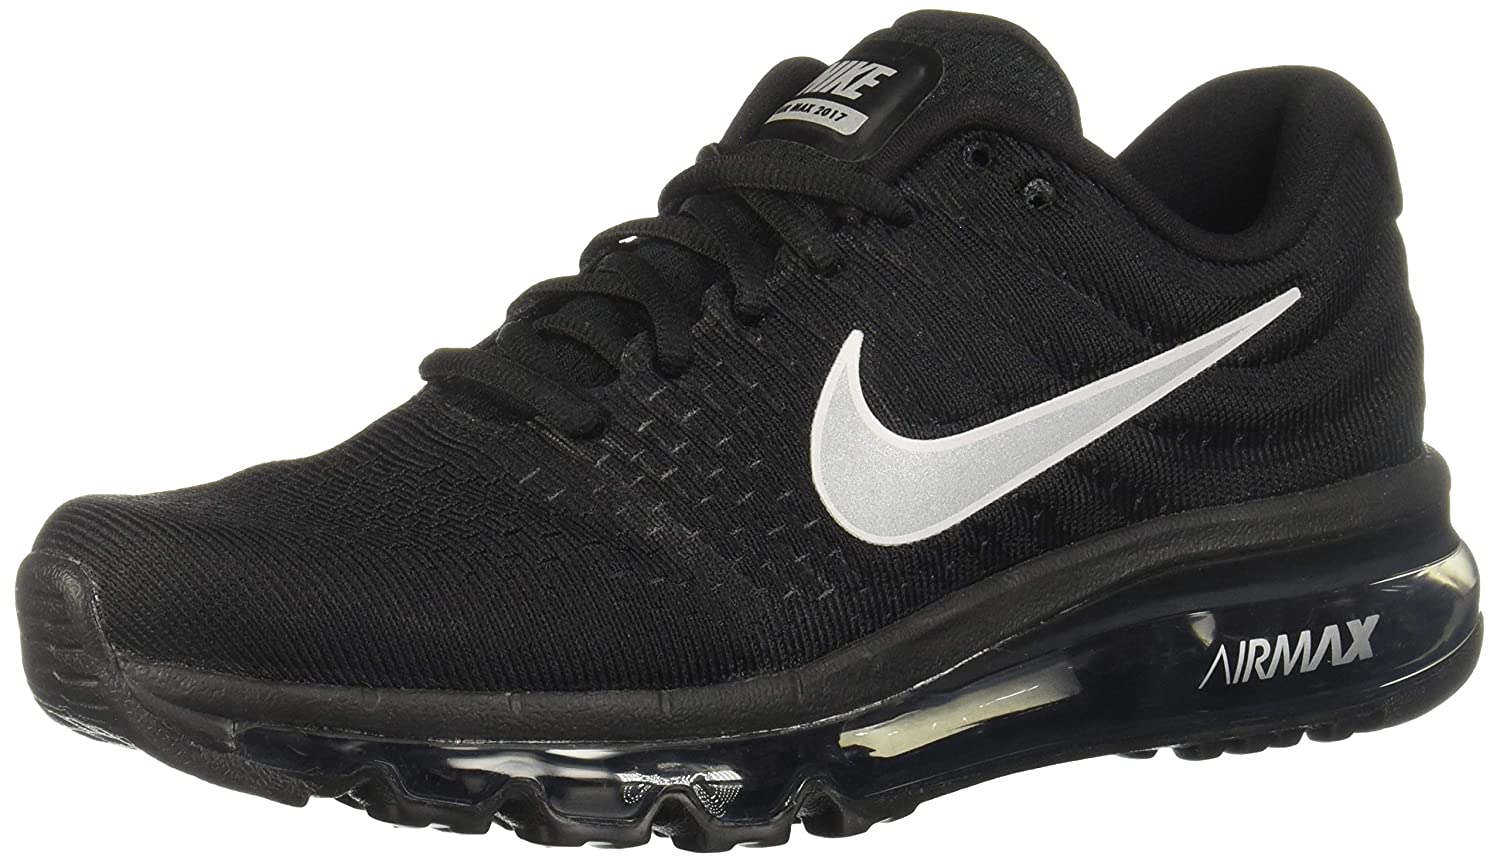 on sale a4454 bb852 Amazon.com   Nike Womens Air Max 2017 Running Shoes Black White Anthracite  849560-001 Size 10   Road Running